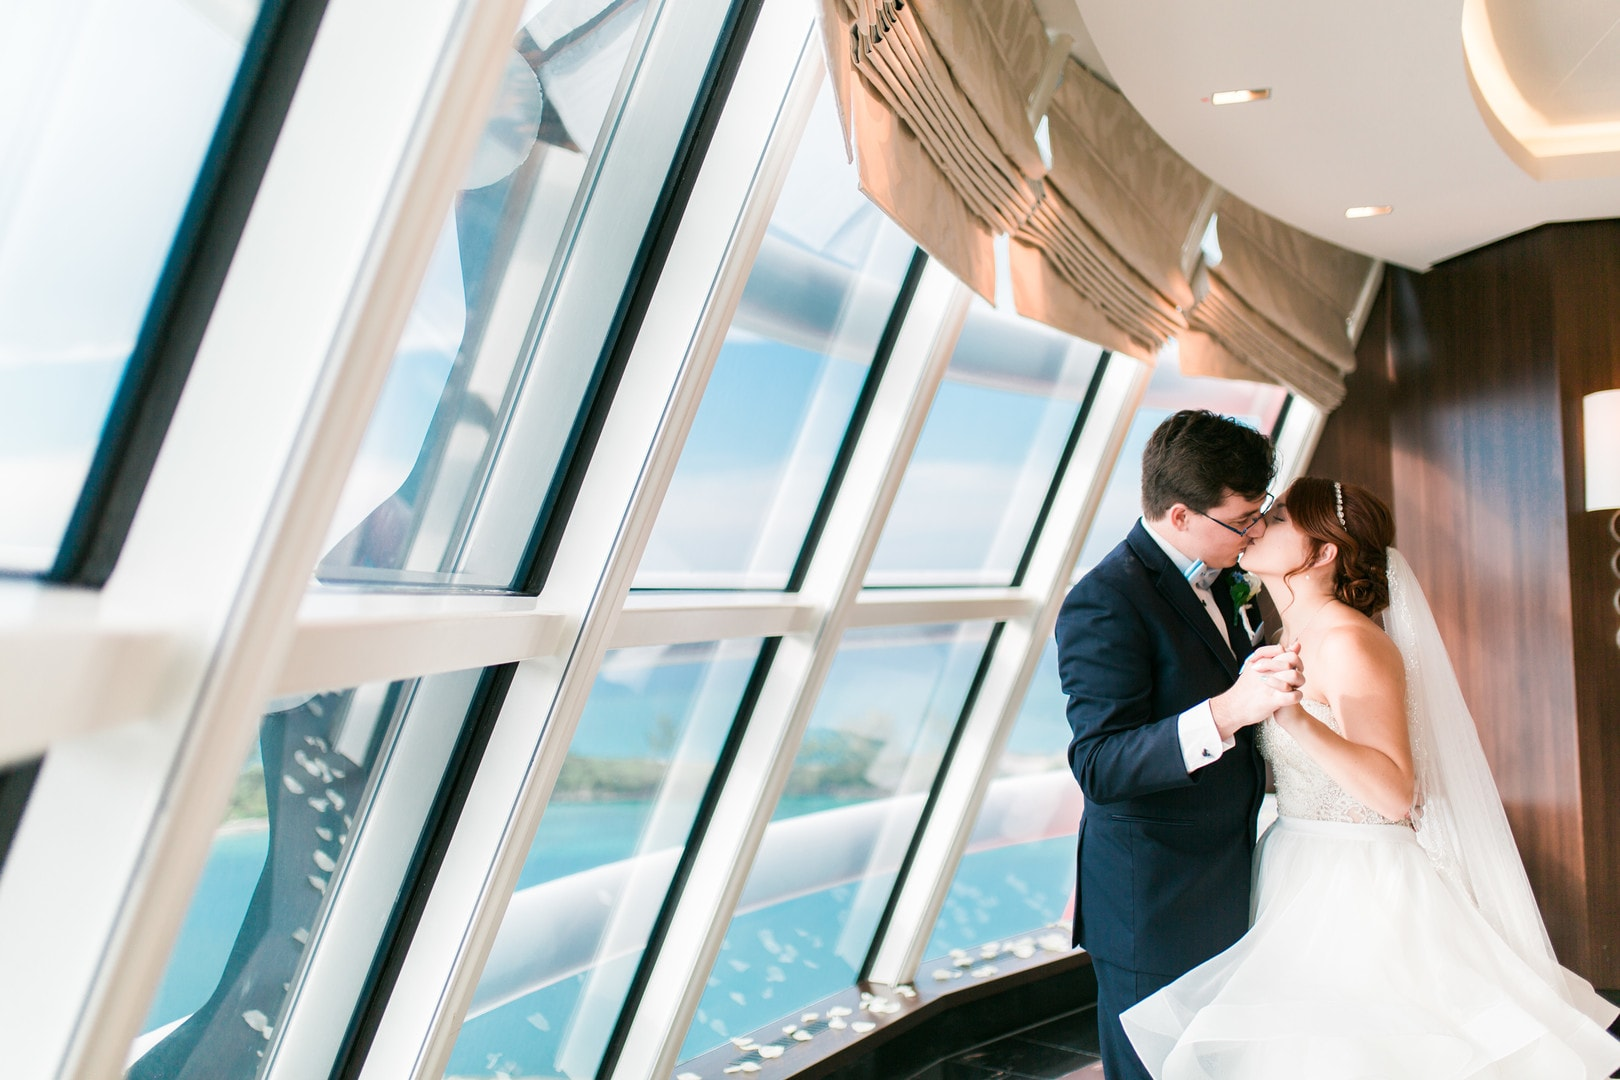 Stephanie & Matt's Disney Cruise Line Wedding Aboard the Disney Dream, Photography by Sugar Peach Productions for Destination Wedding Blog Adriana Weddings